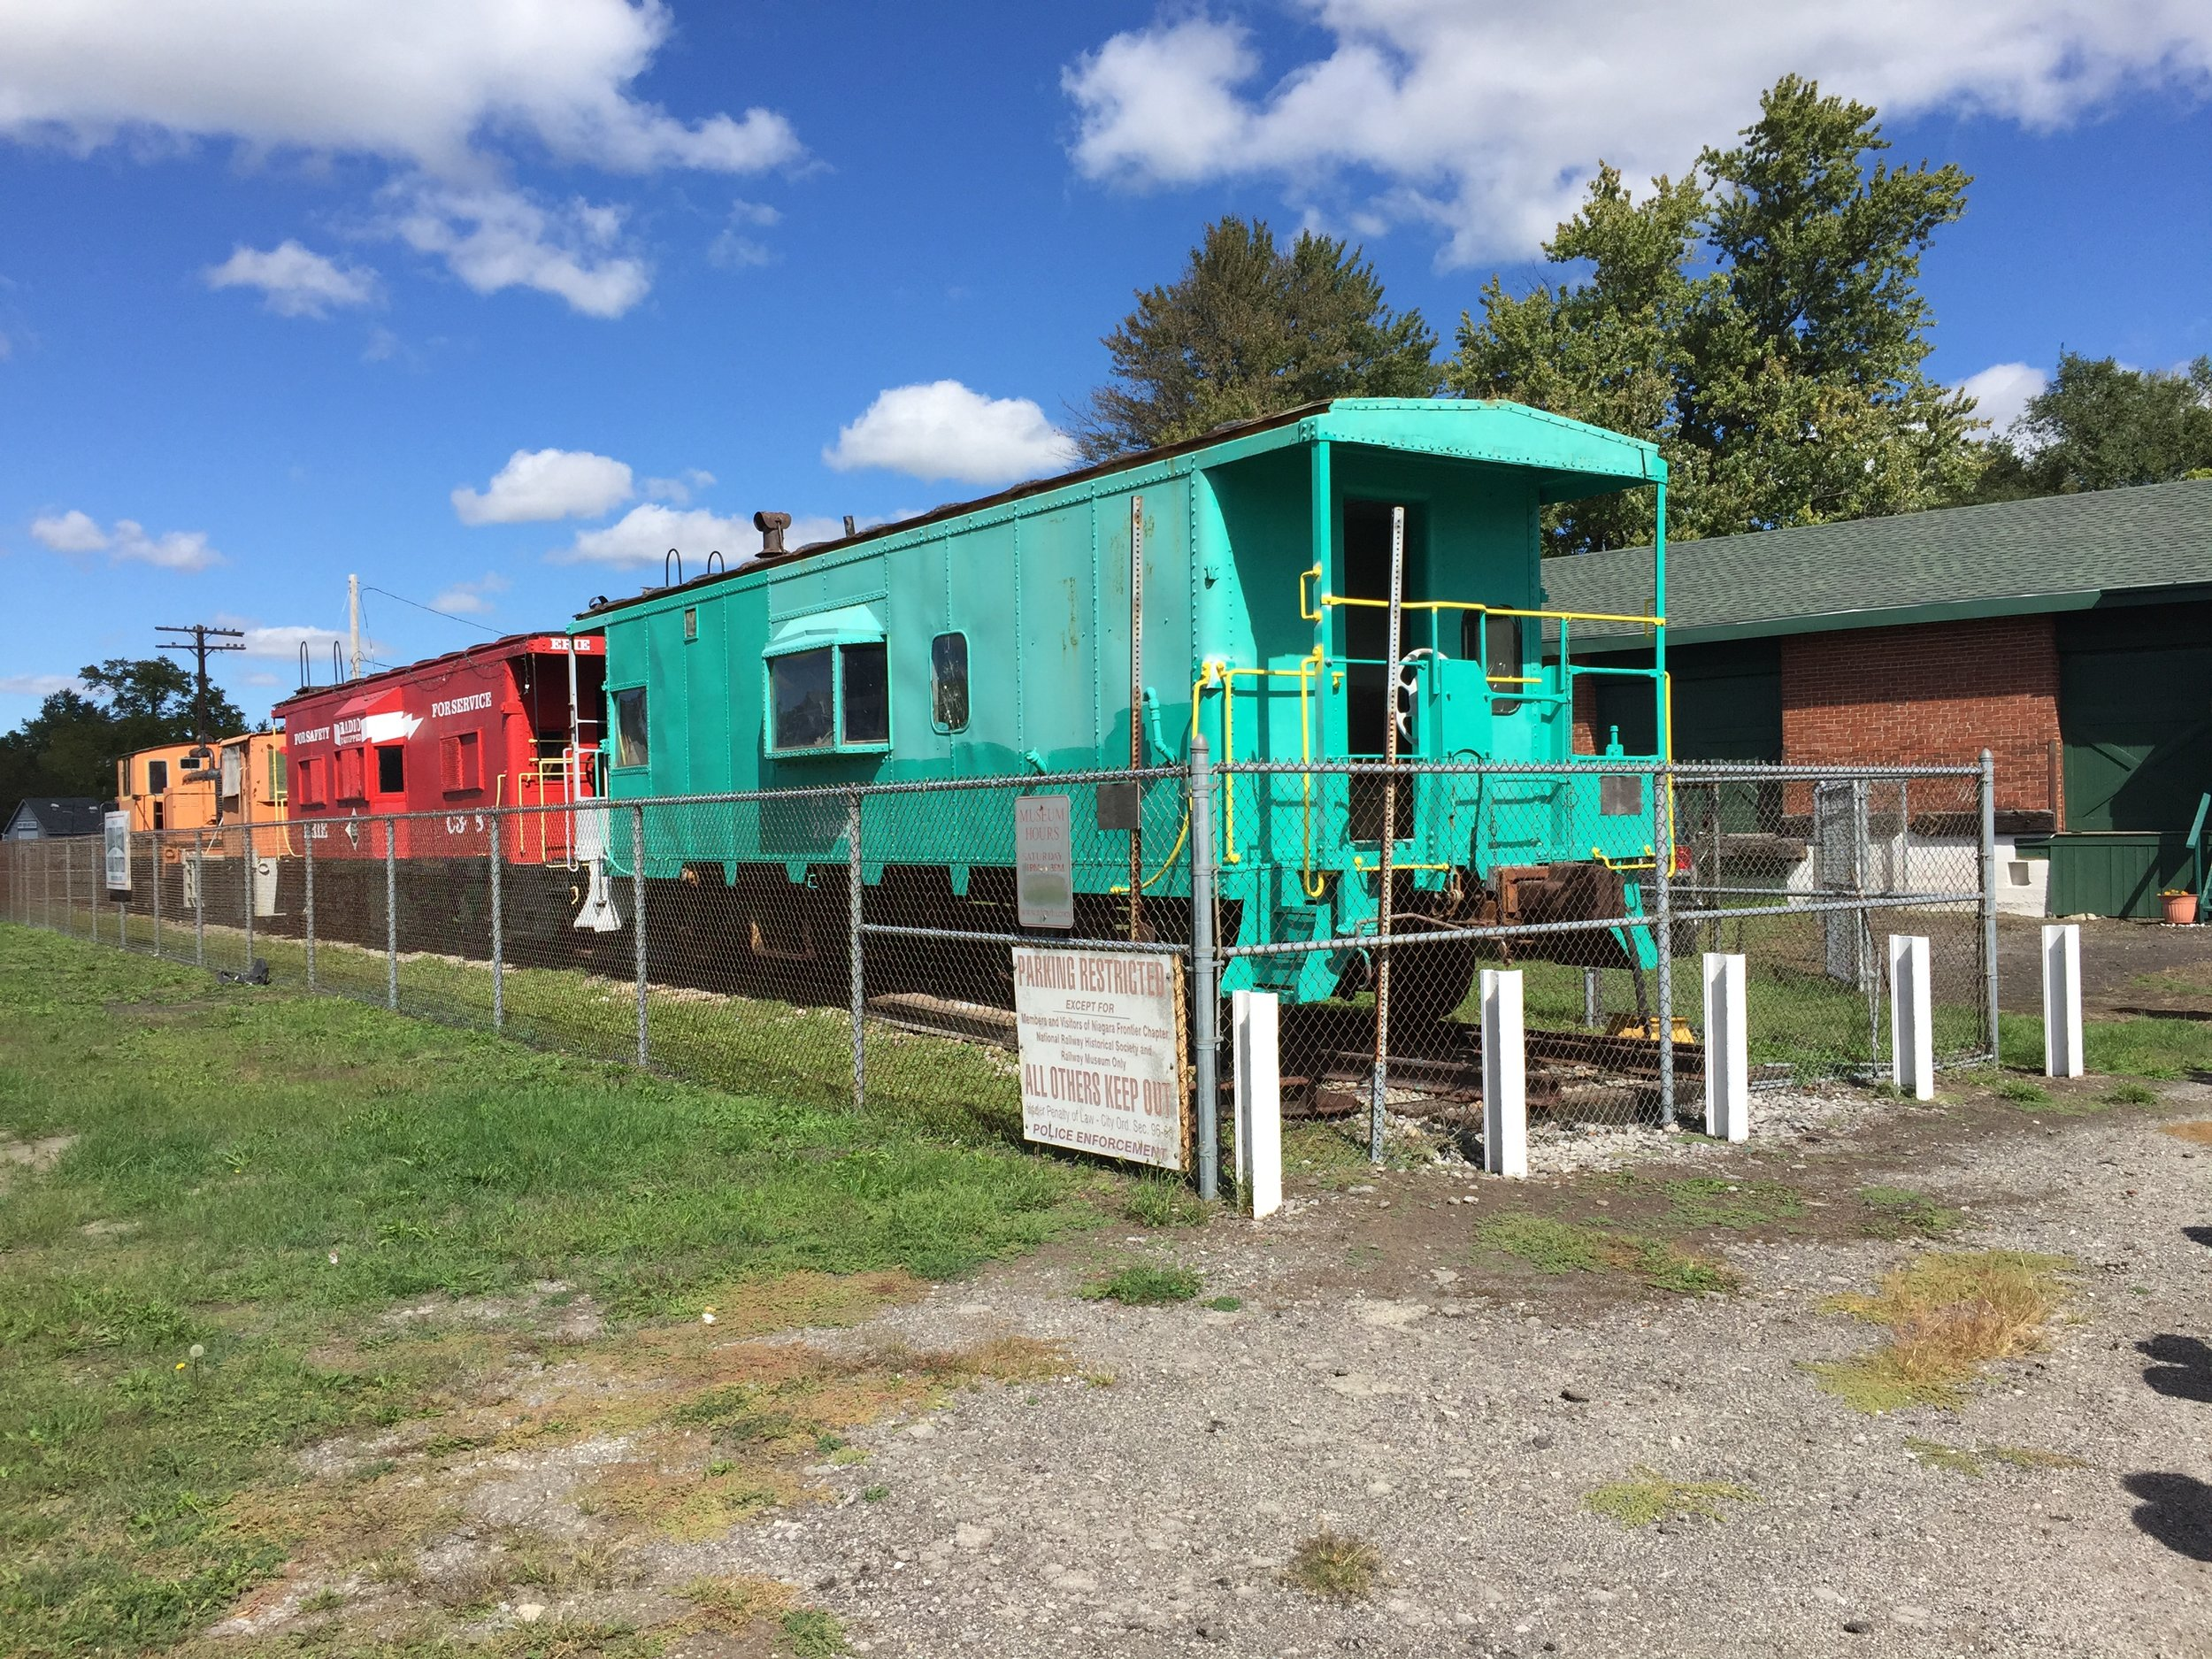 Cabooses on display at the Railroad Museum of the Niagara Frontier